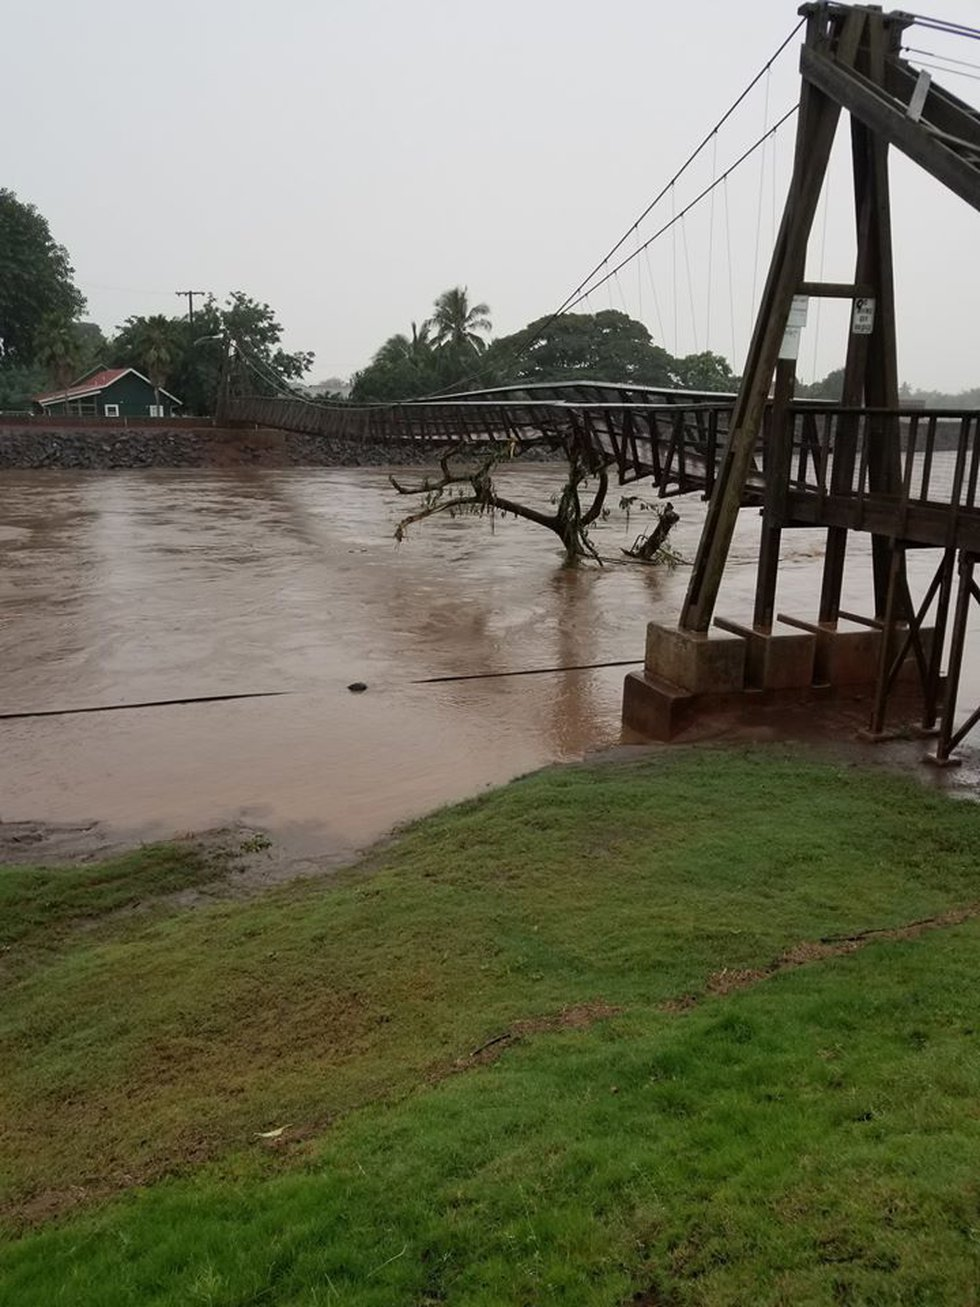 The Hanapepe Swinging Bridge has been damaged and is currently closed.